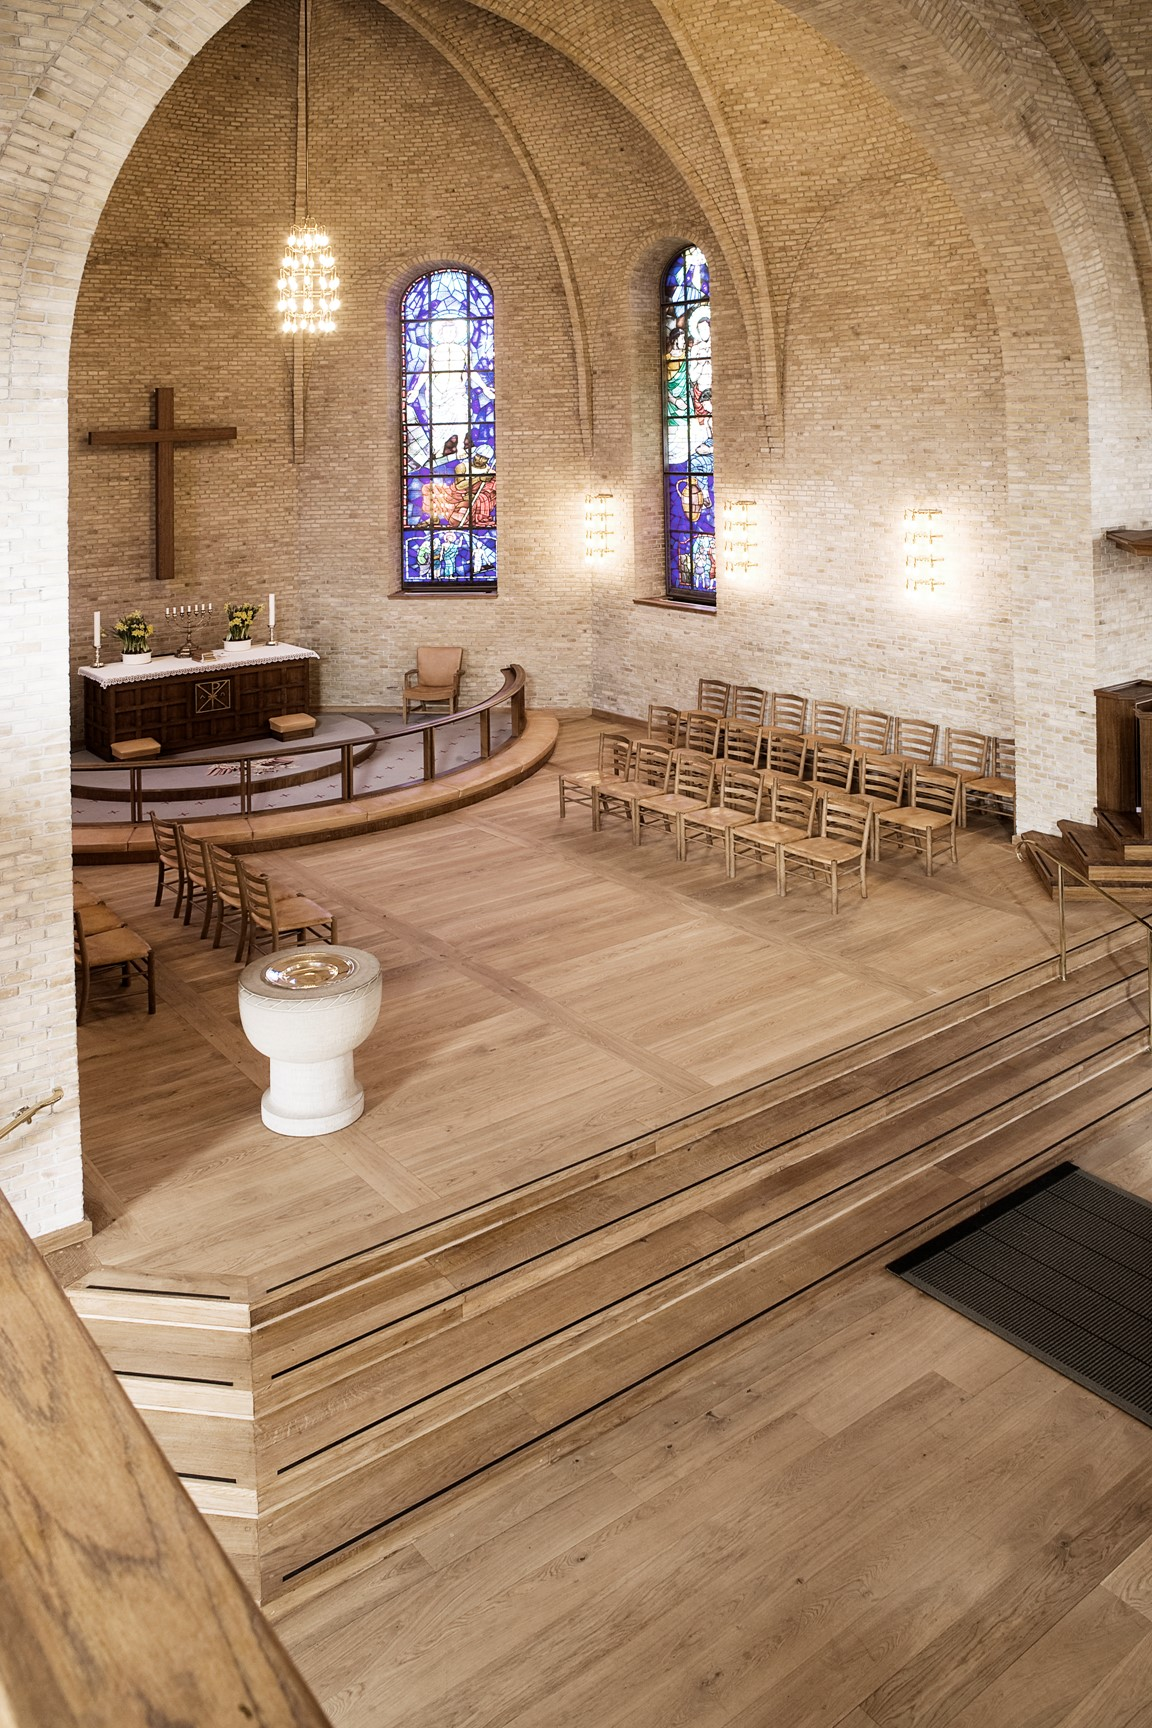 oak wood flooring hellerup church altar dinesen.jpg